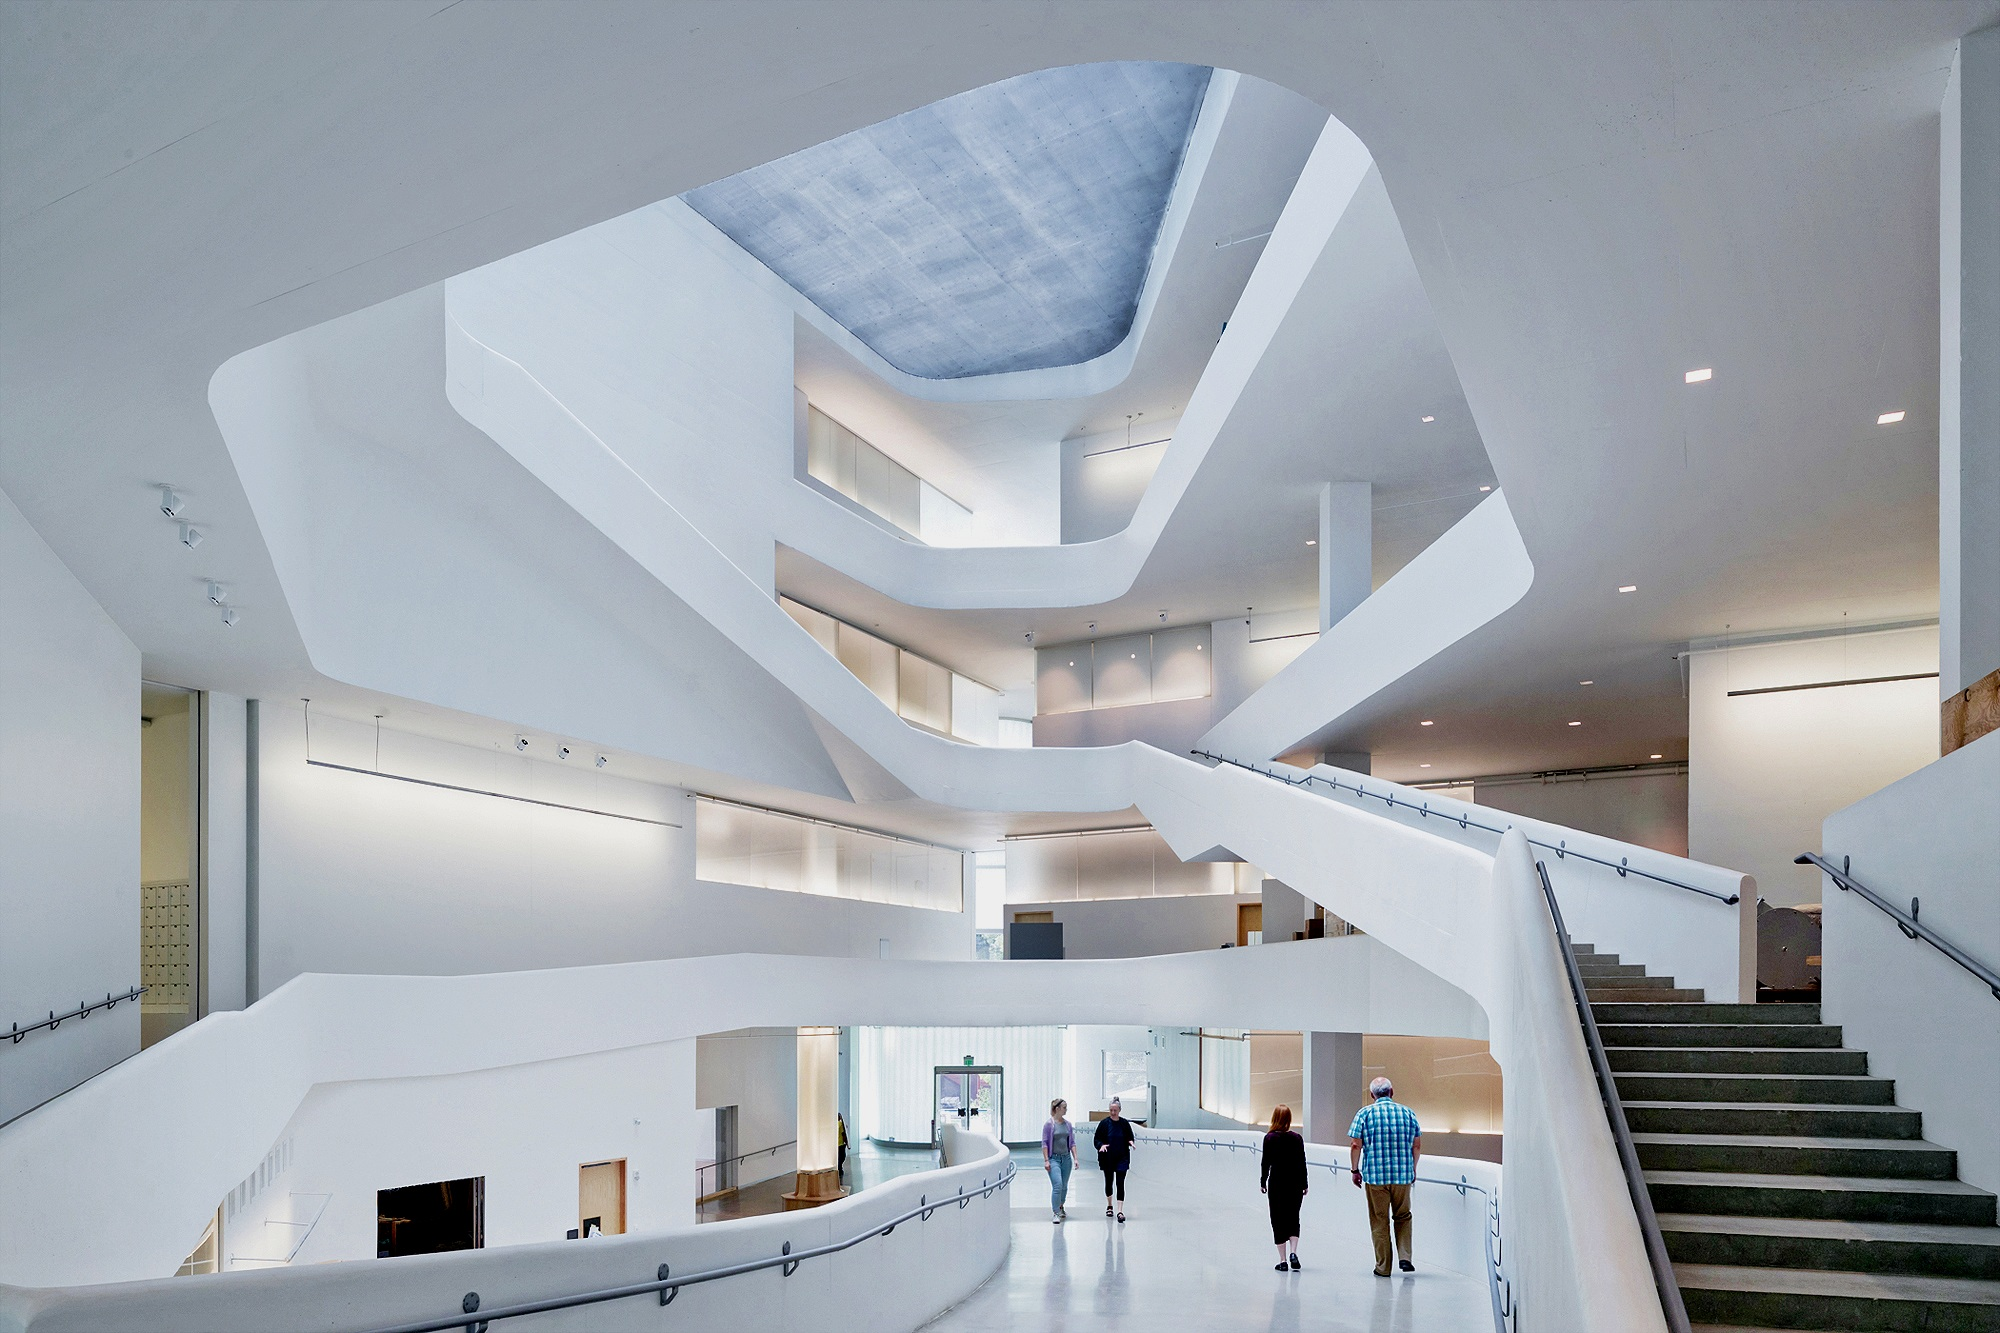 Enabling Flow  — Voided concrete slabs create more column free space and accommodate creativity.